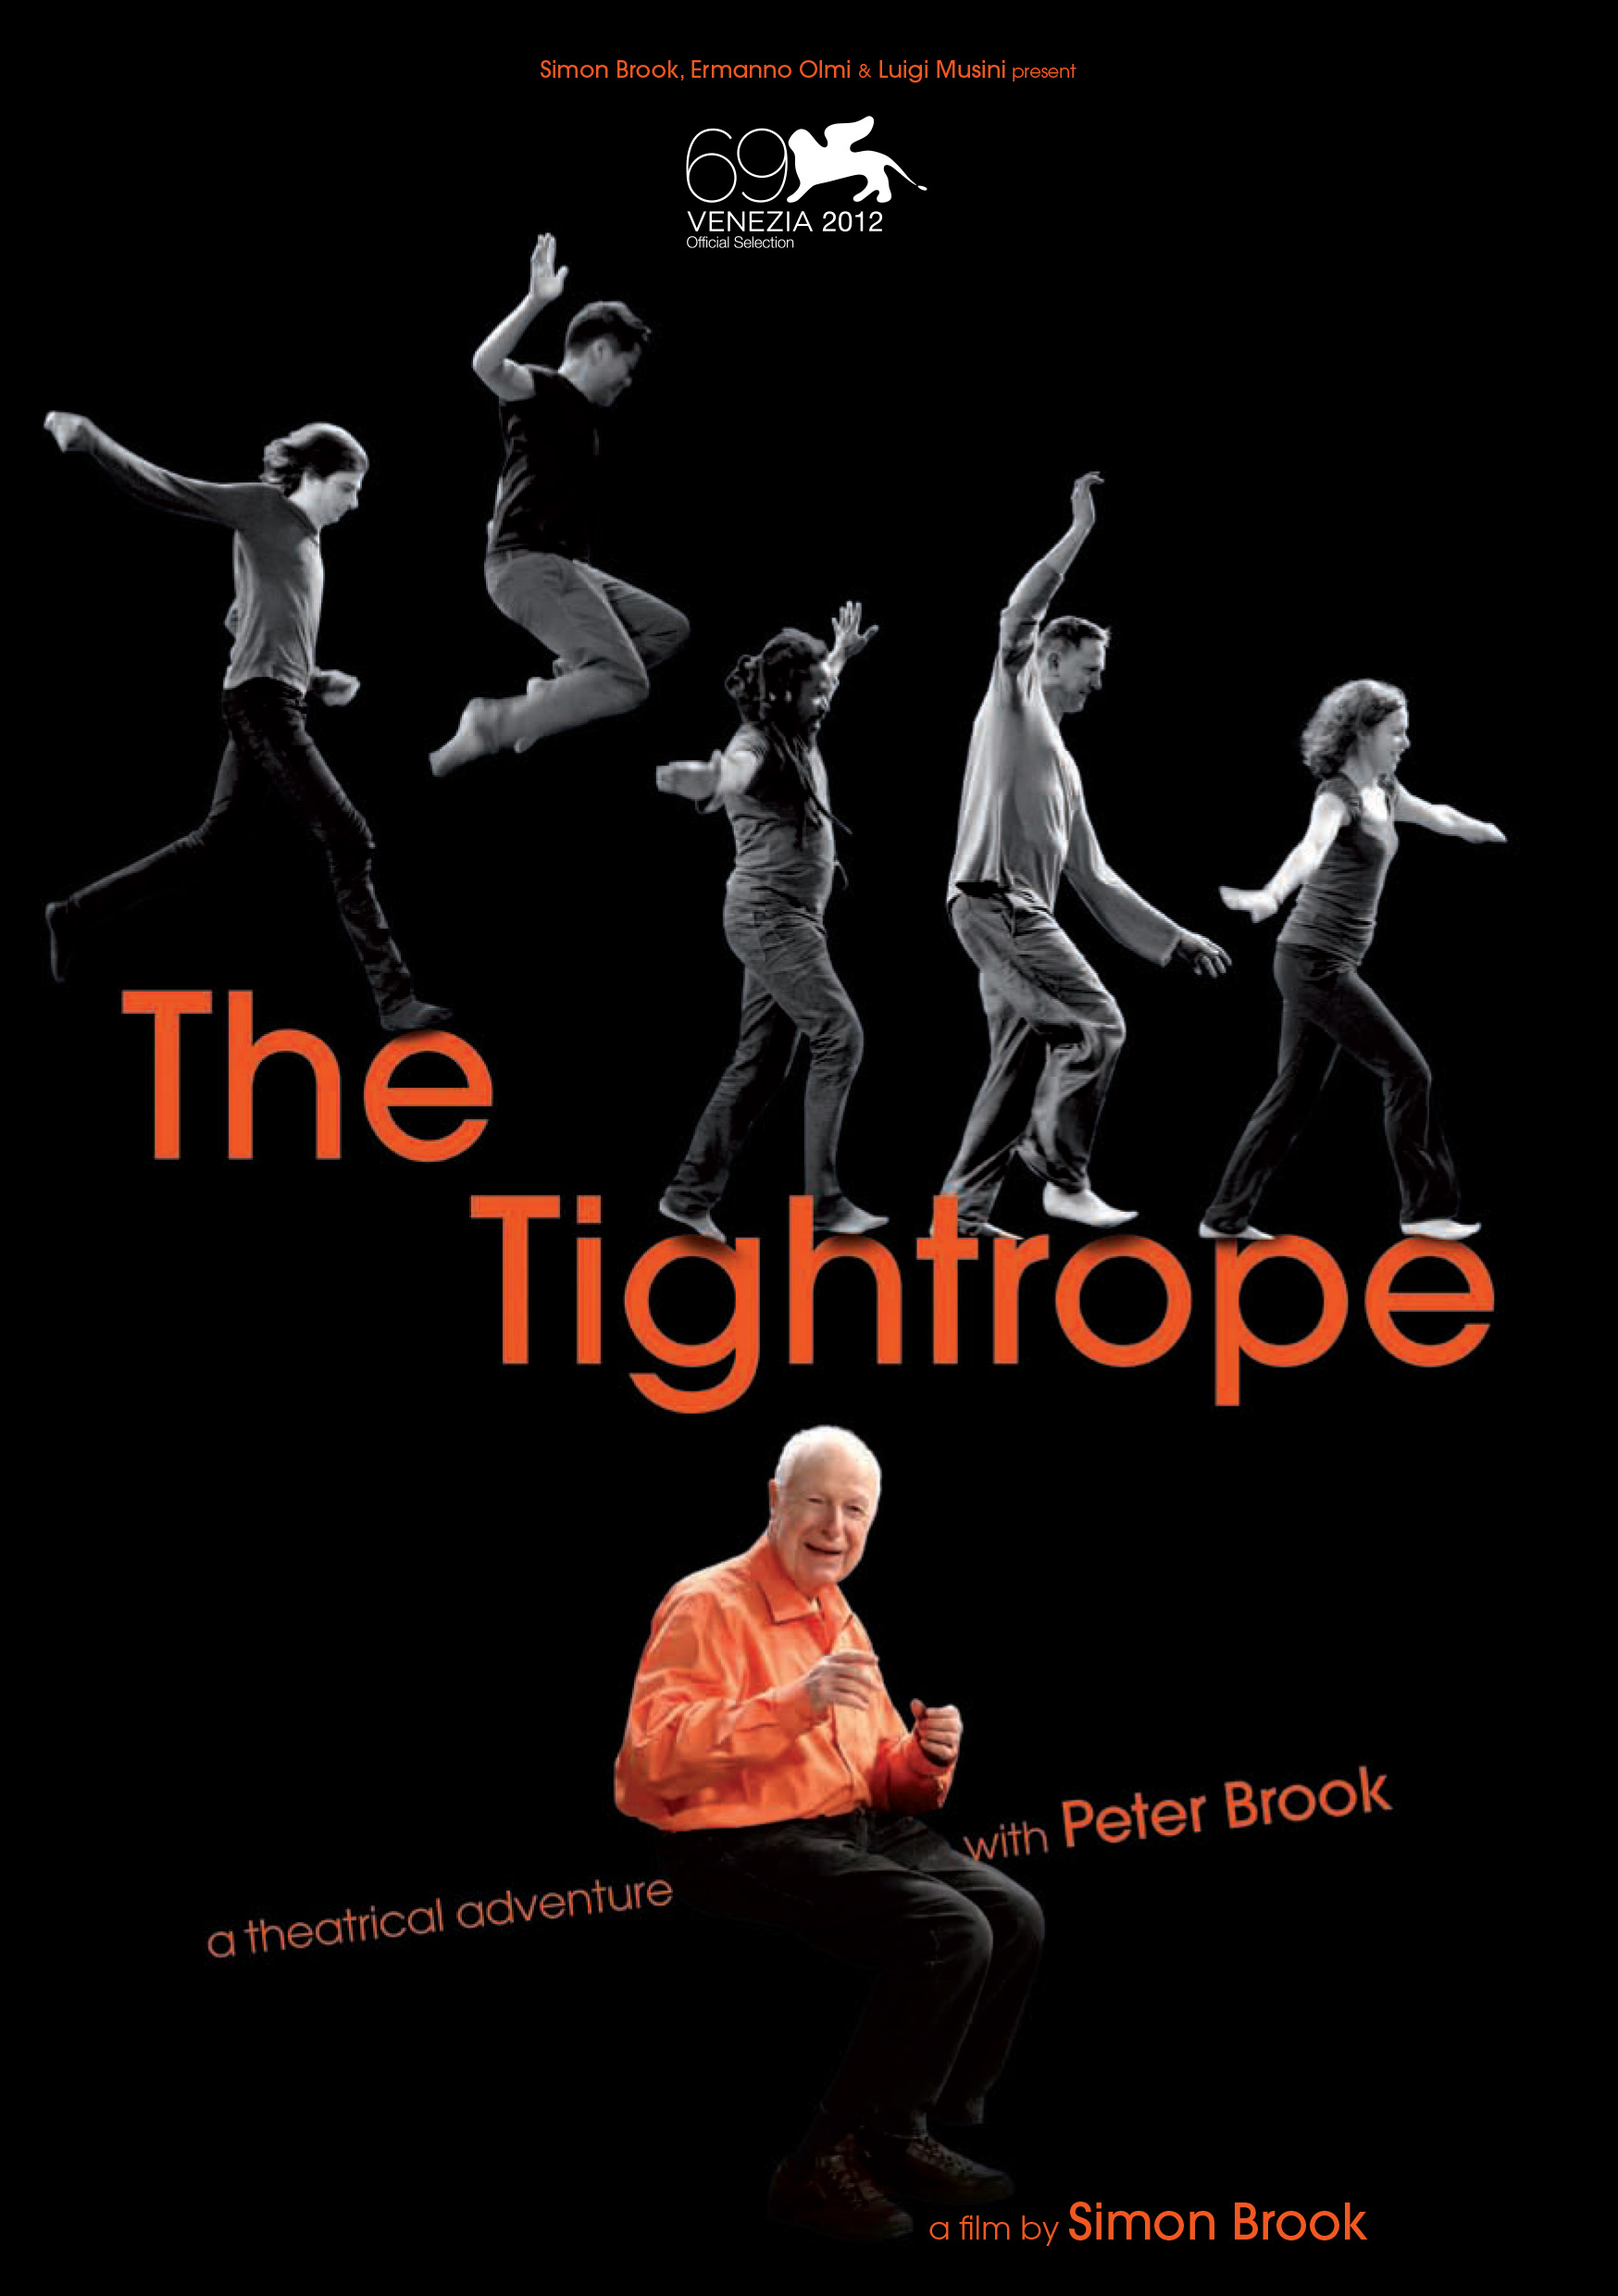 Peter Brook - The Tightrope, a film by Simon Brook